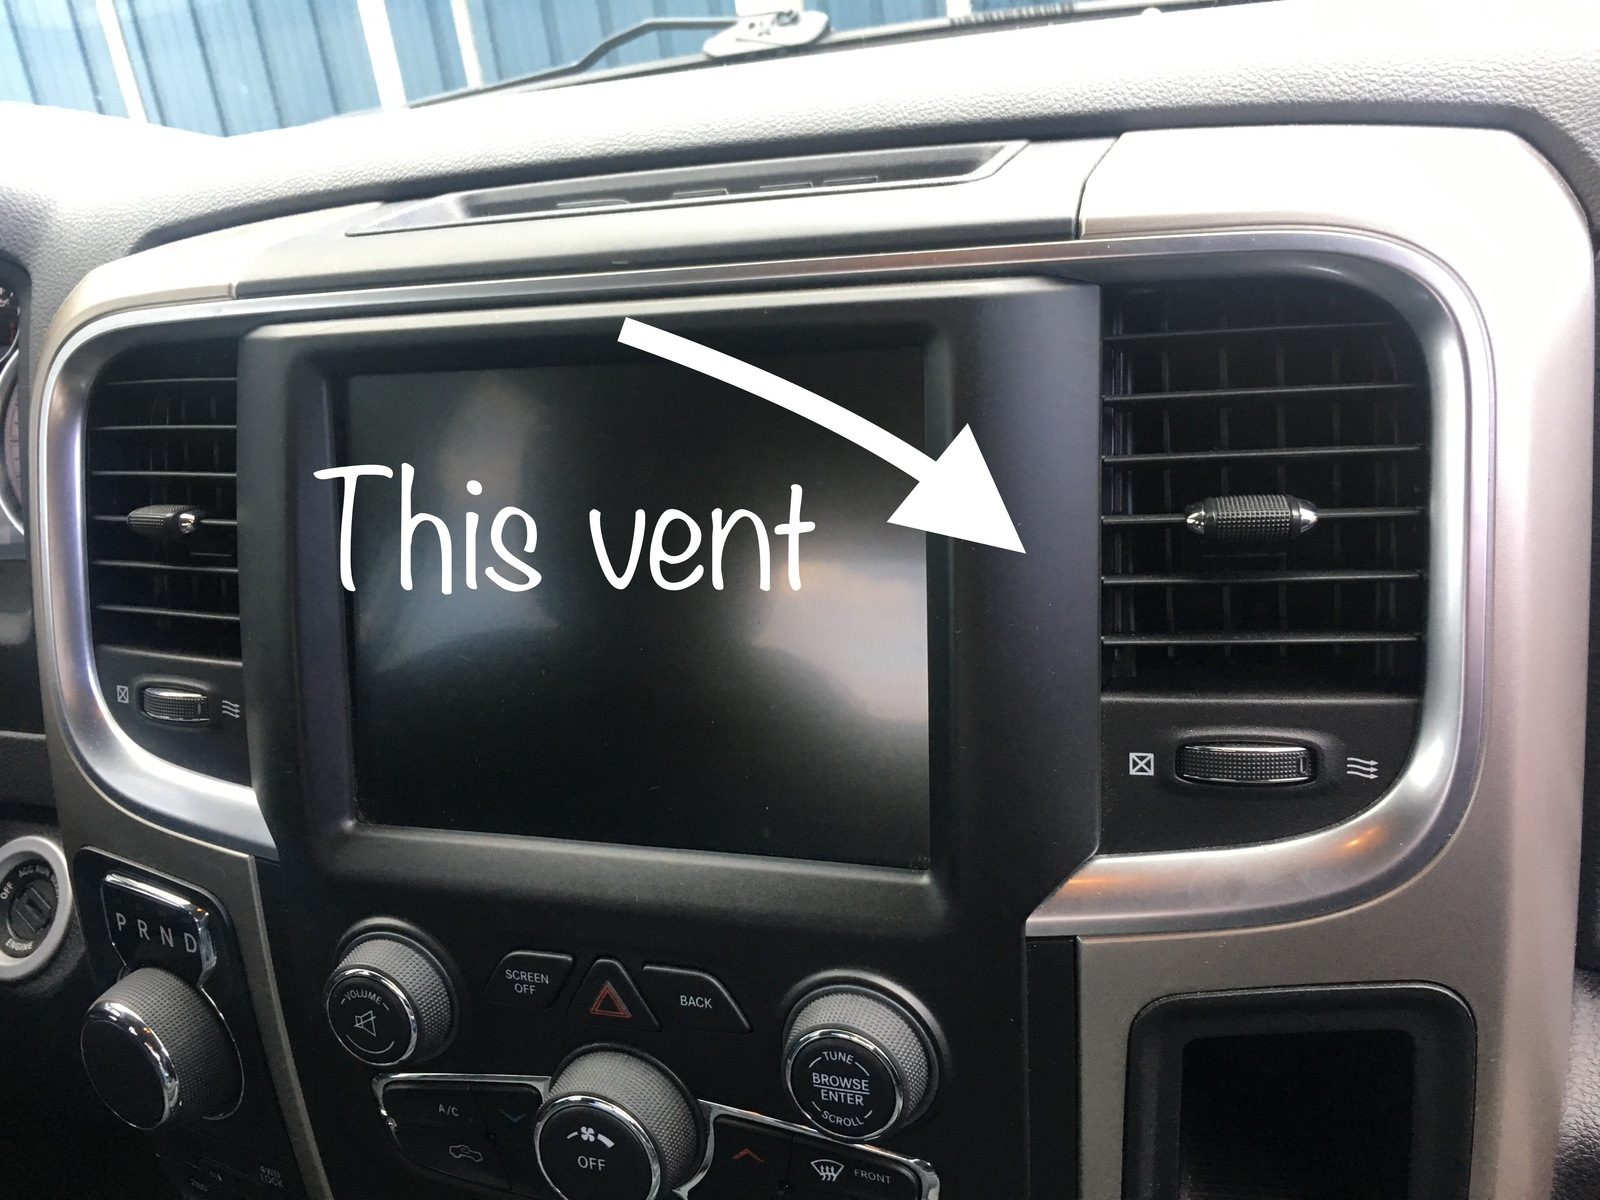 Ram 1500 Questions - No air from passenger side vent 2014